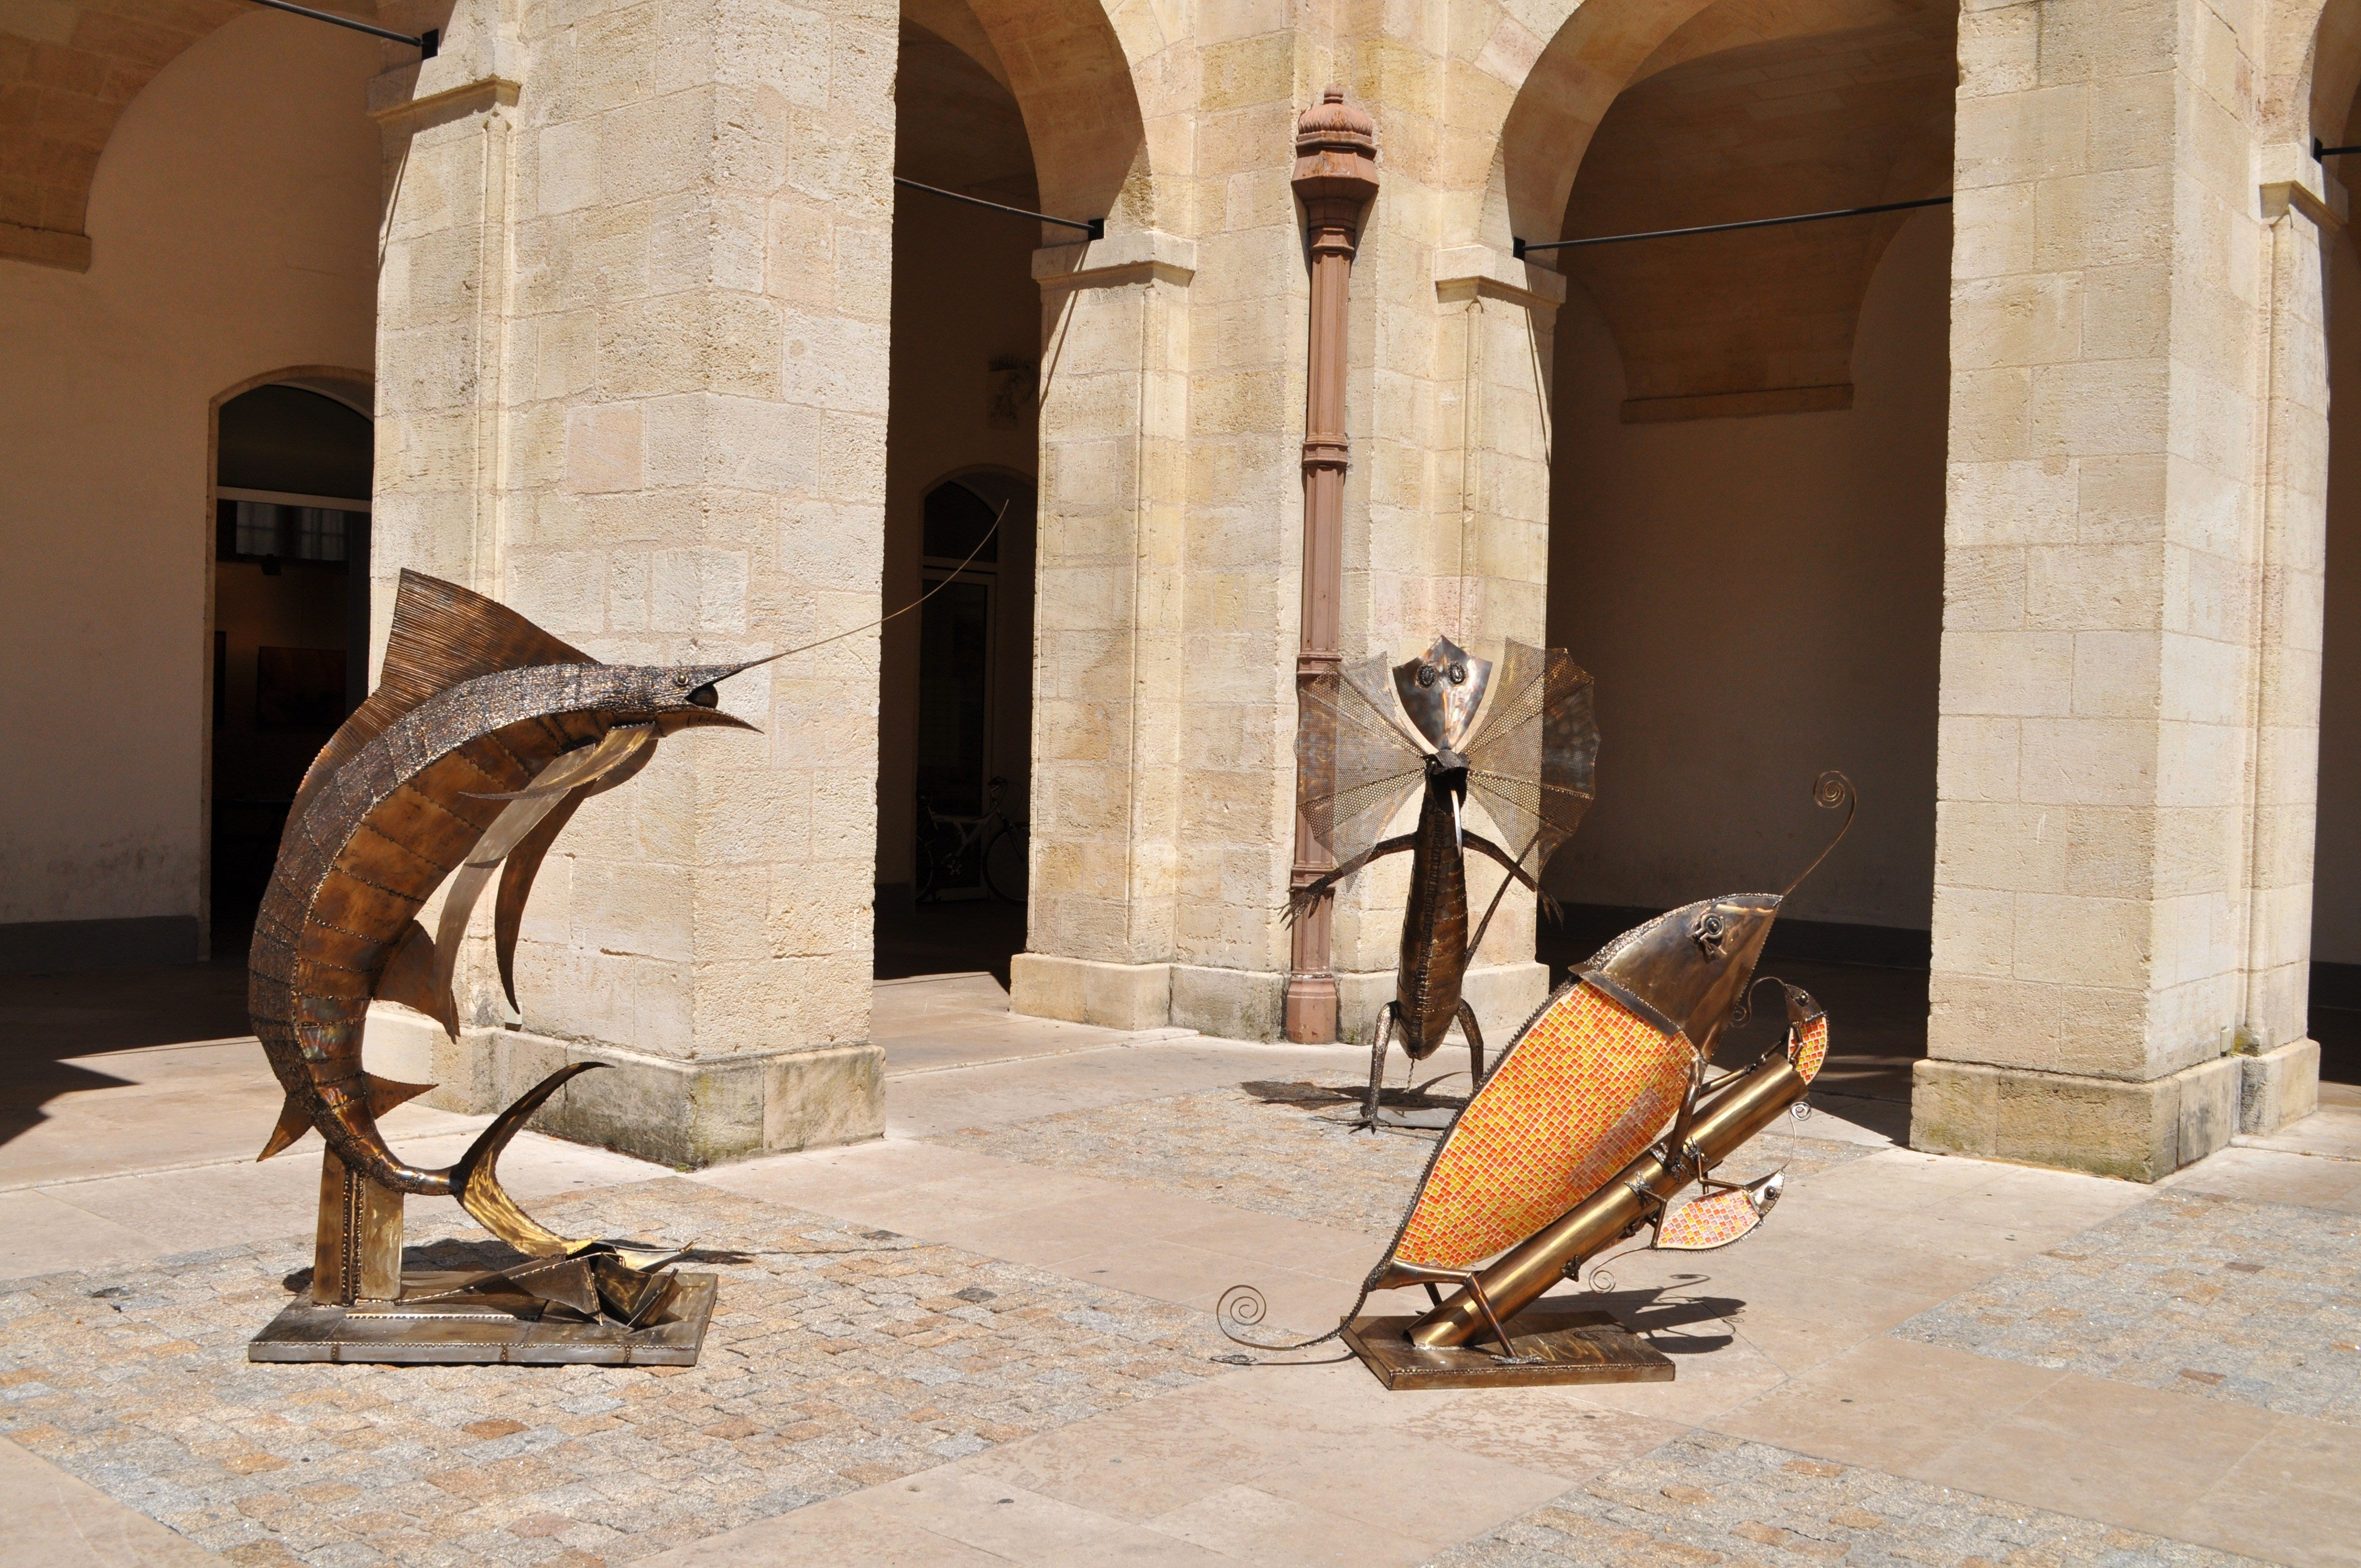 Escultura en Patio Mably